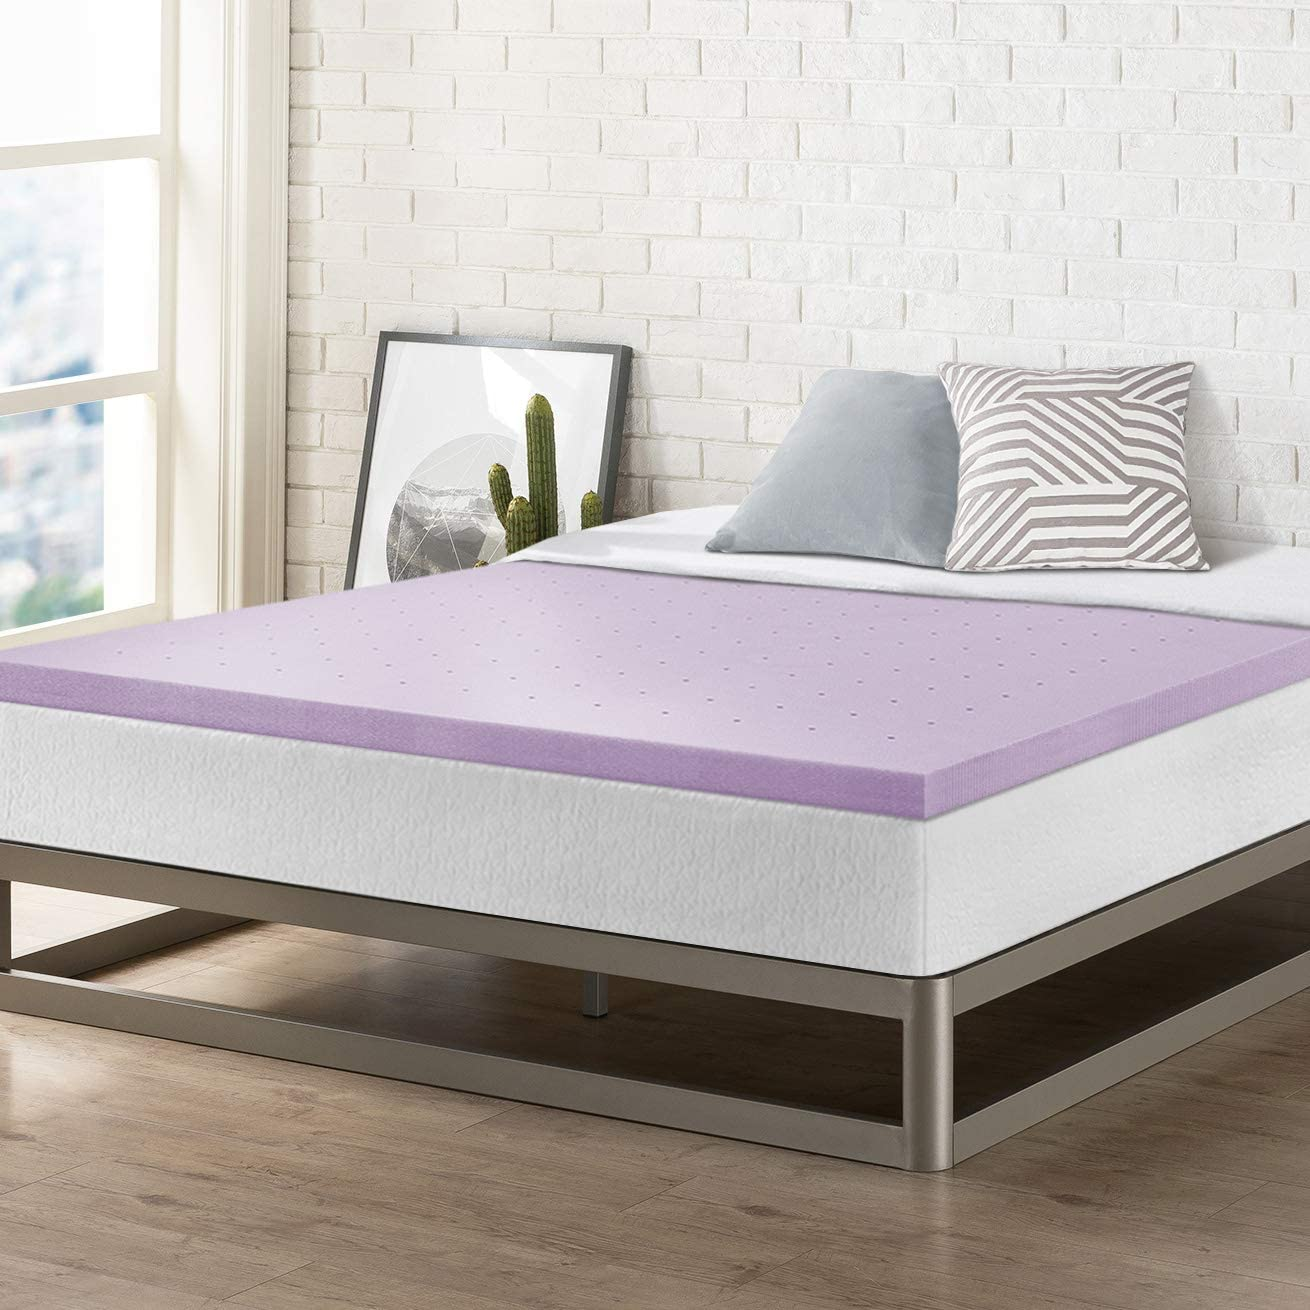 Best Price Mattress Topper Full, 2 Memory Foam Mattress Topper with Lavender Certipur-US Certified Cooling, Full Size